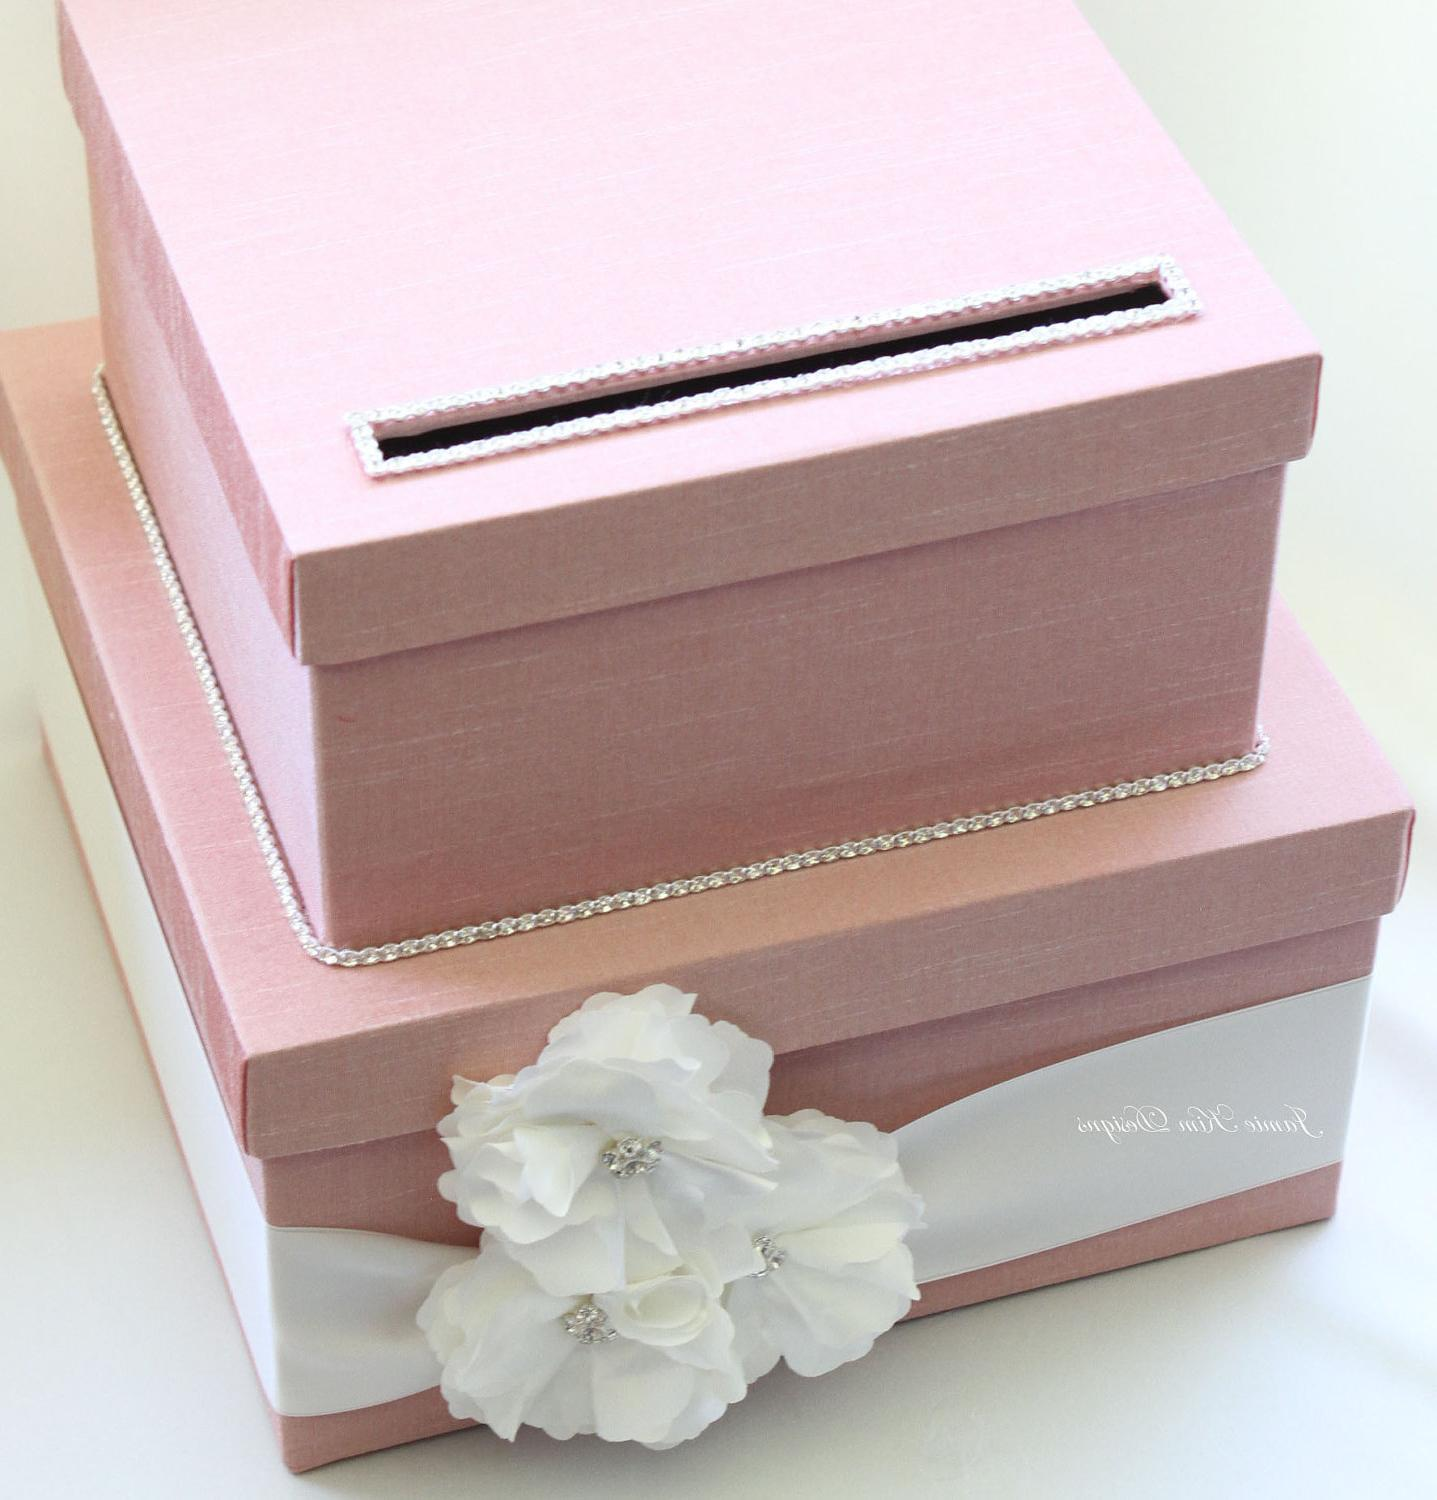 Wedding Money Gift Guidelines : Wedding Card Box Money Gift. Guidelines For Monetary Wedding Gifts ...